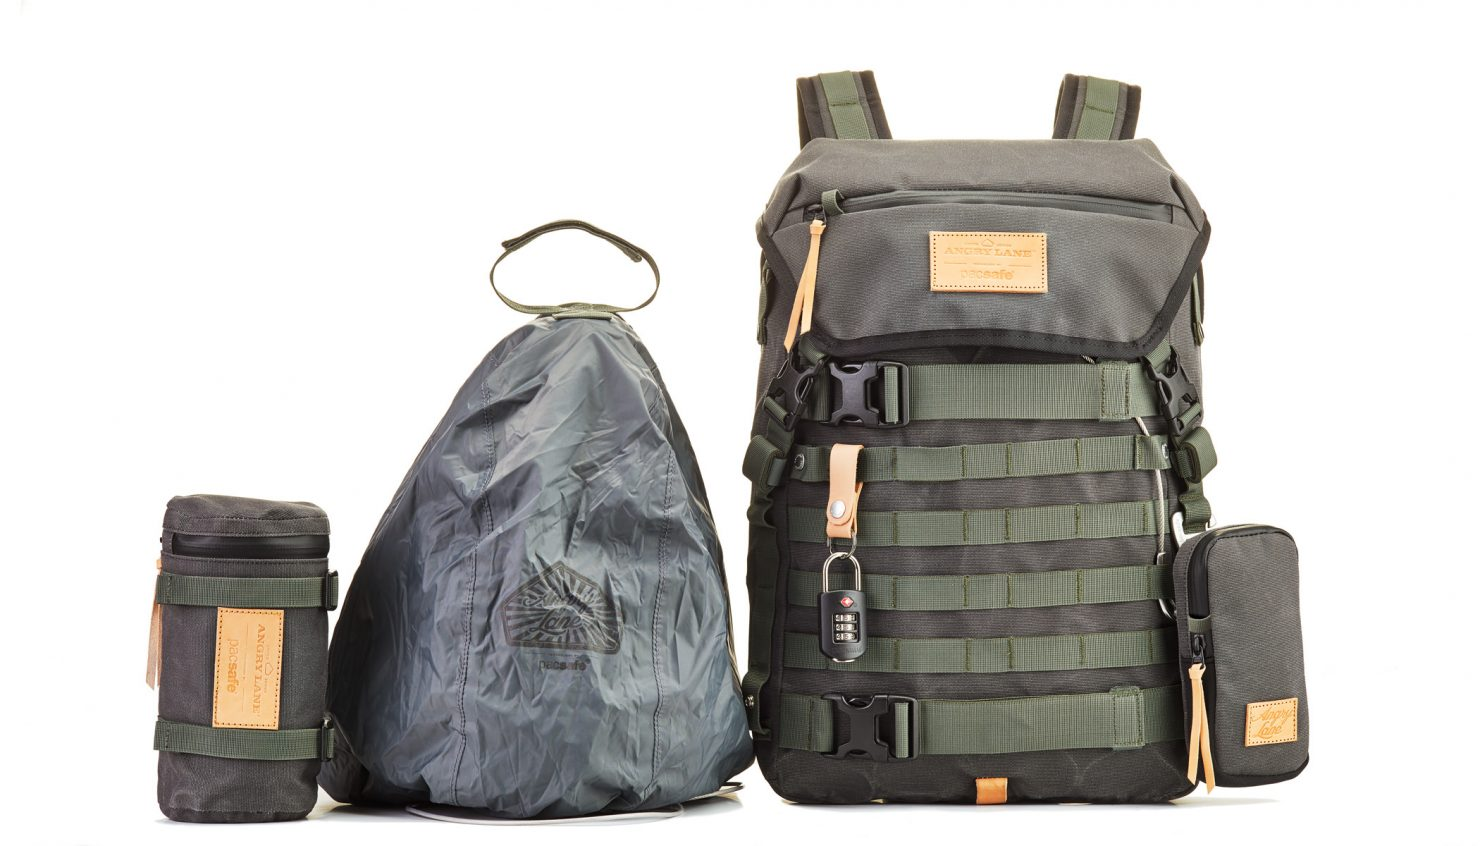 The Angry Lane Rider Daypack 3 1480x846 - The Angry Lane Rider Daypack